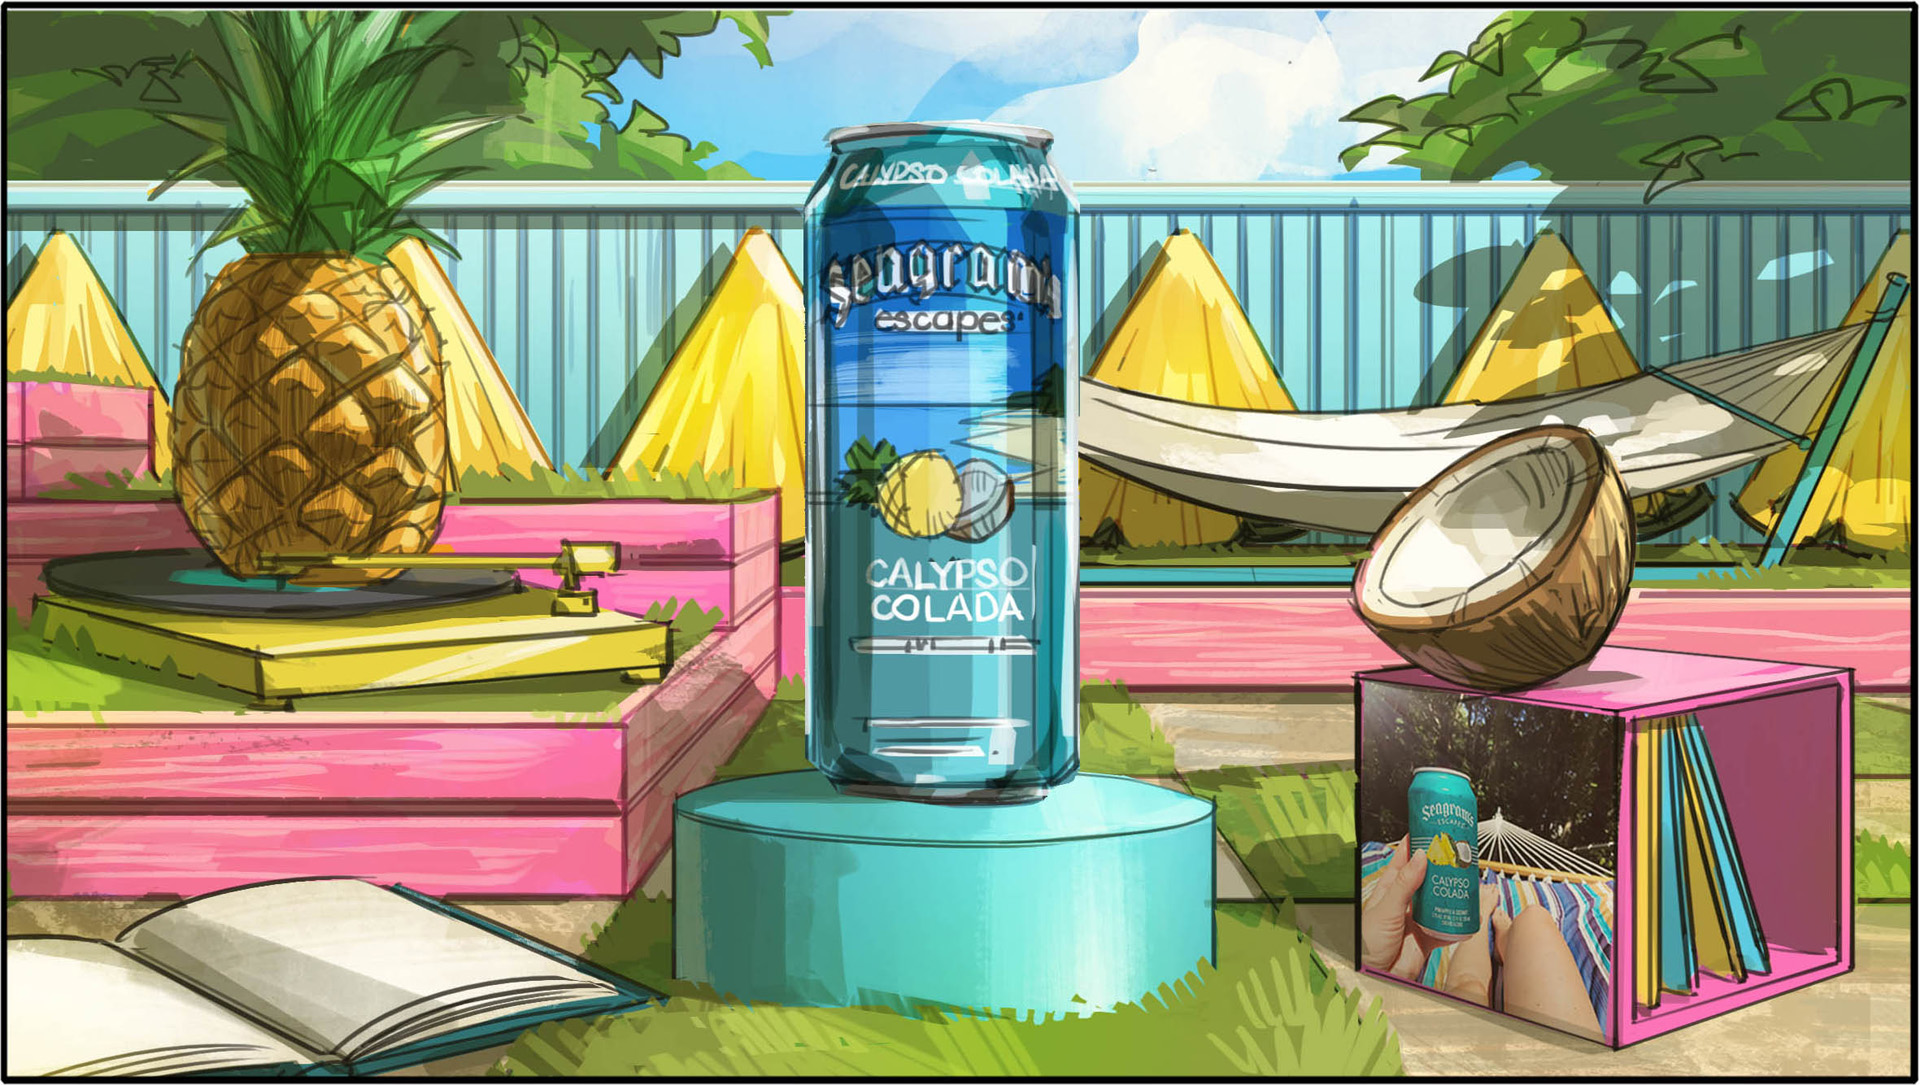 SEAGRAMS_KIC_BACKYARD_COLOR_01.jpg